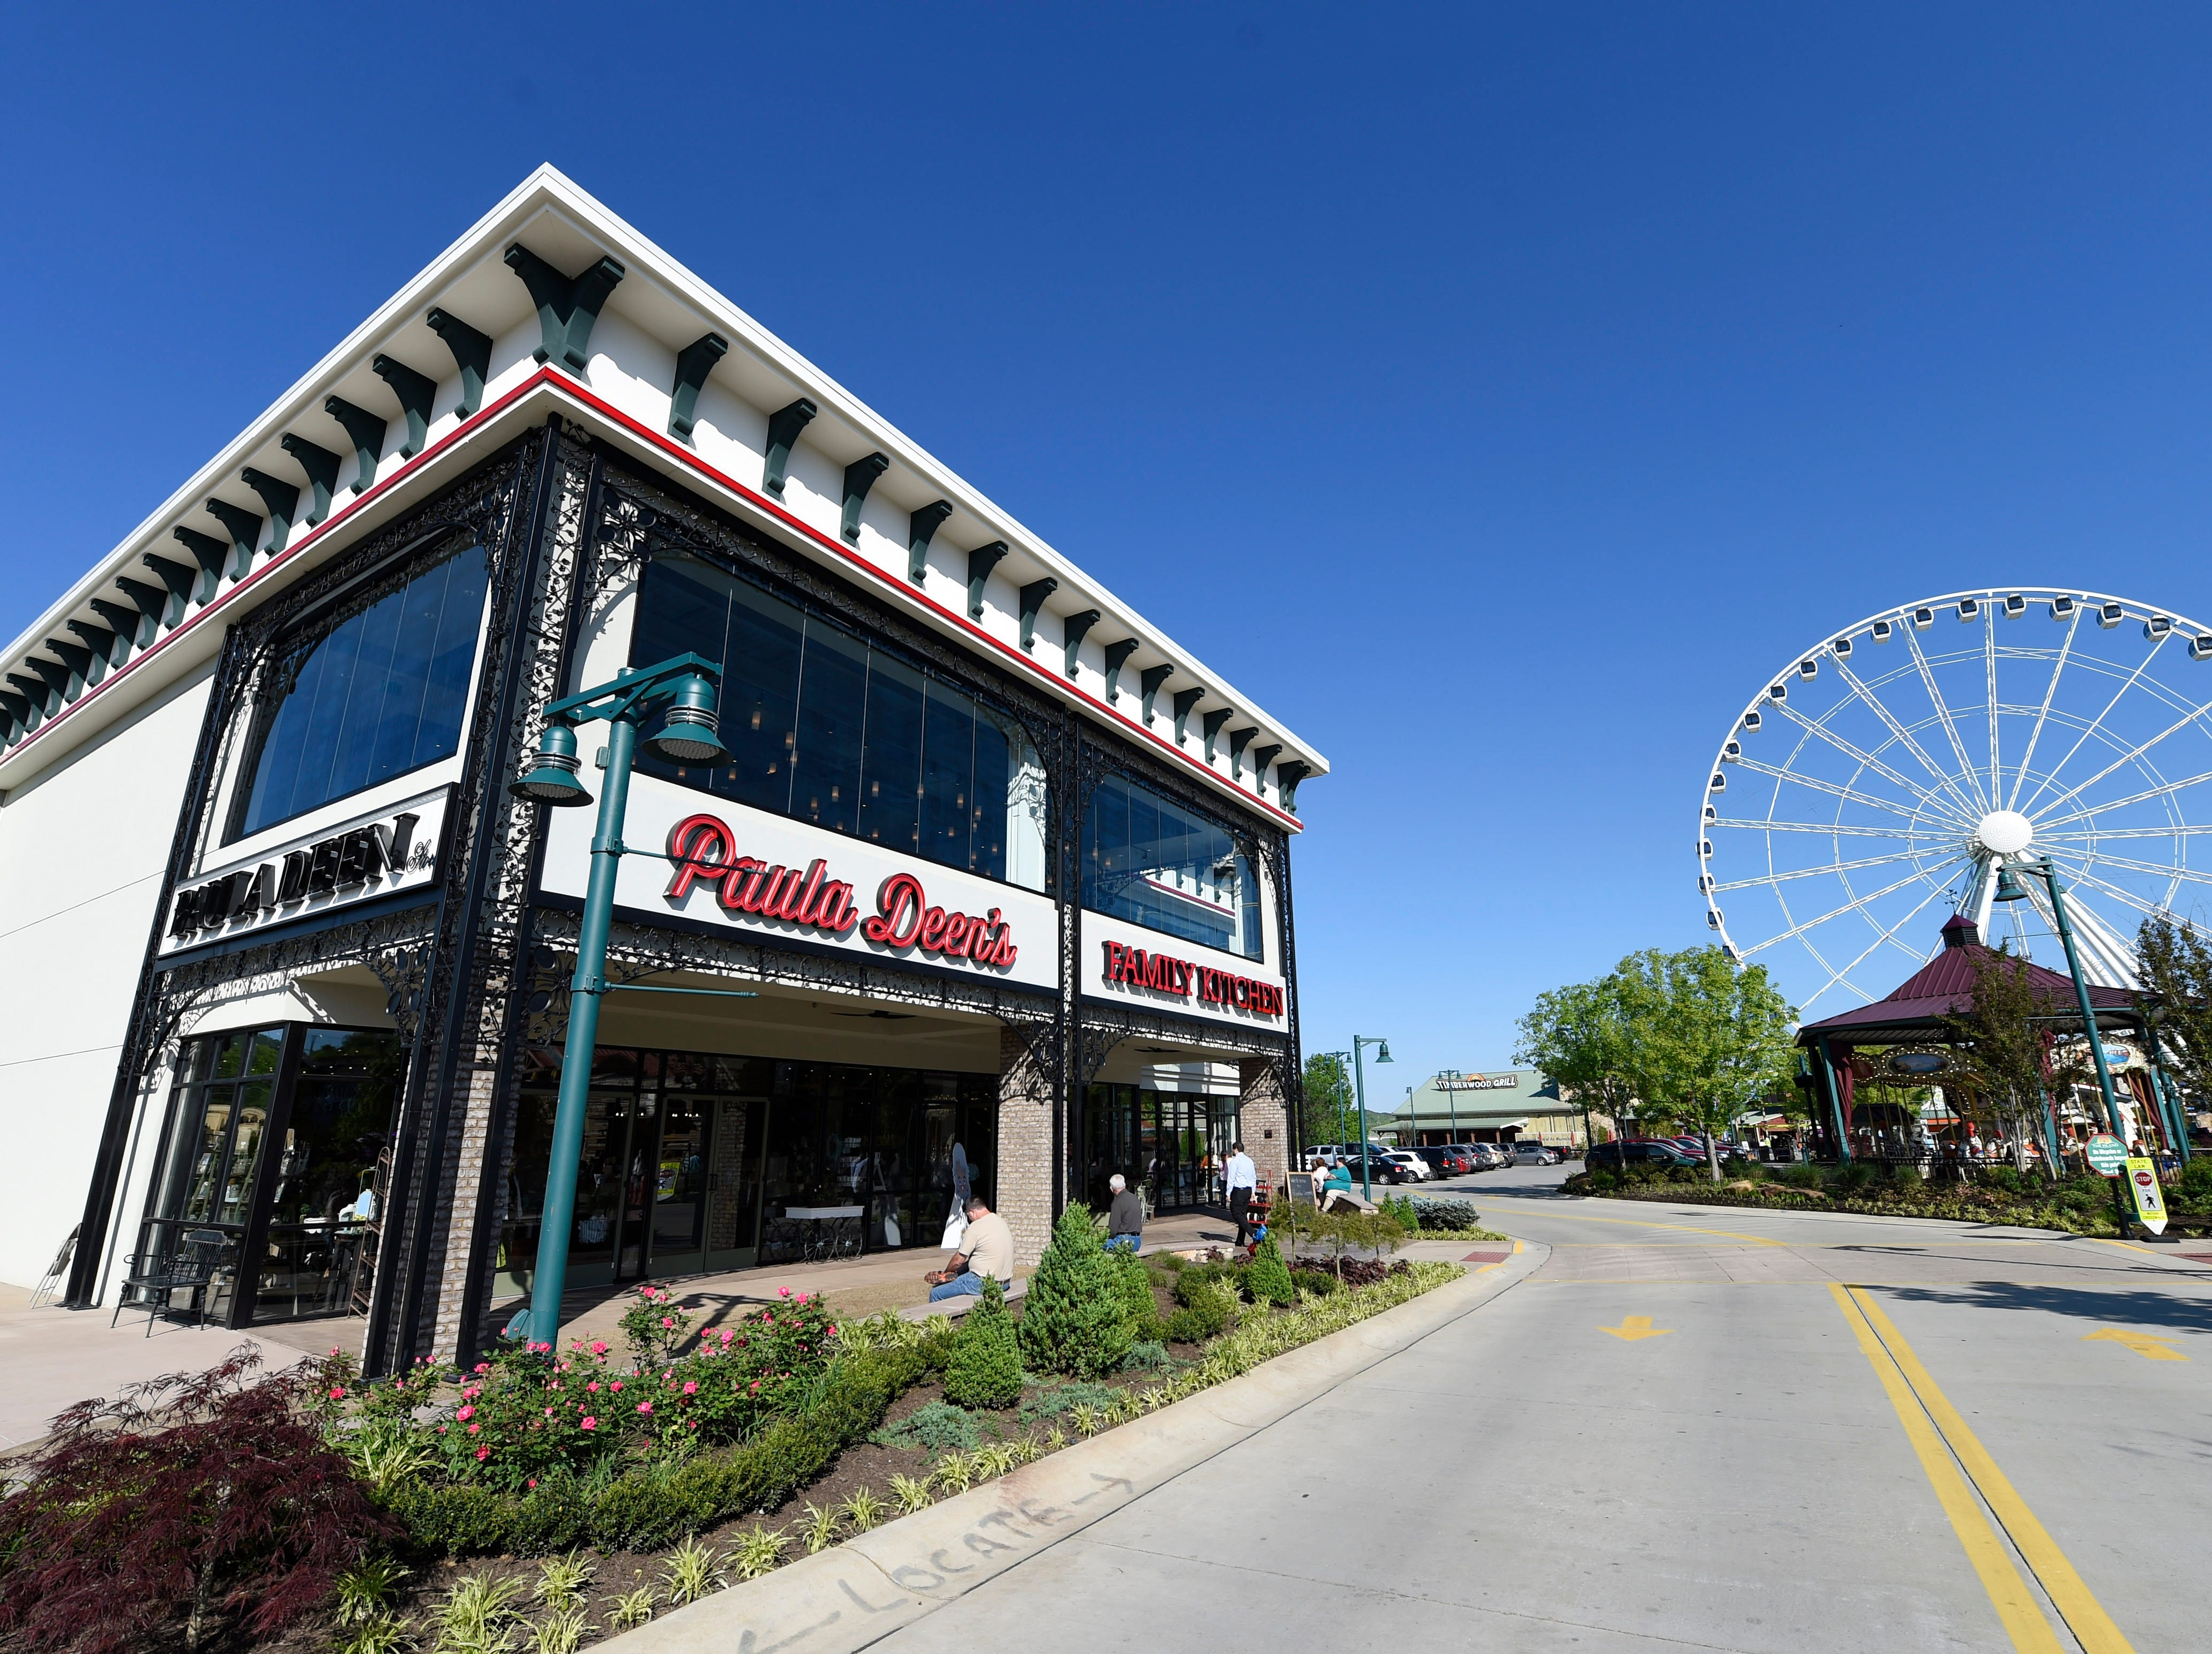 The new Paula Dean's Family Kitchen restaurant in Pigeon Forge on Monday, April 27, 2015.